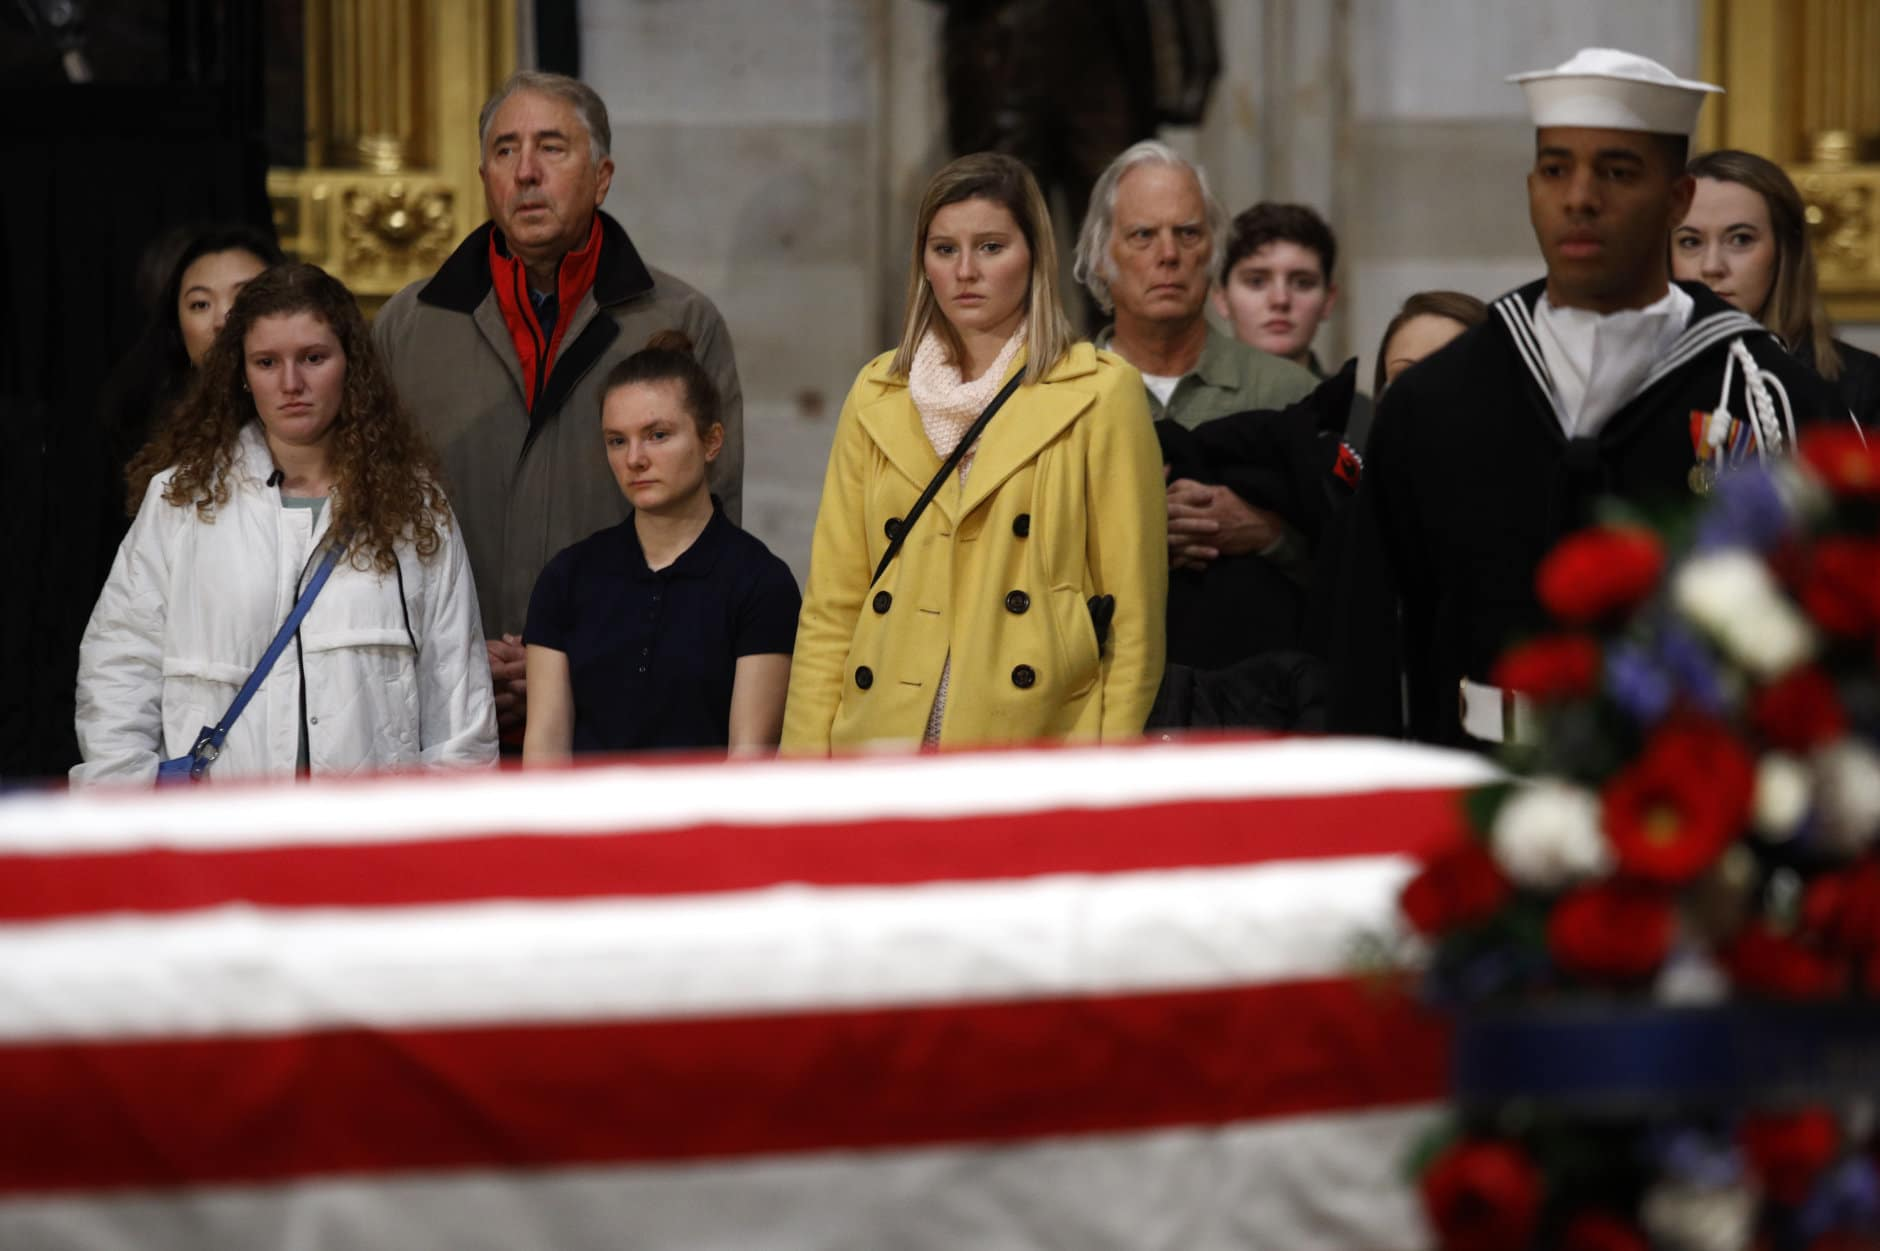 Visitors file past the flag-draped casket of former President George H.W. Bush as he lies in state in the Capitol Rotunda in Washington, Tuesday, Dec. 4, 2018. (AP Photo/Patrick Semansky)